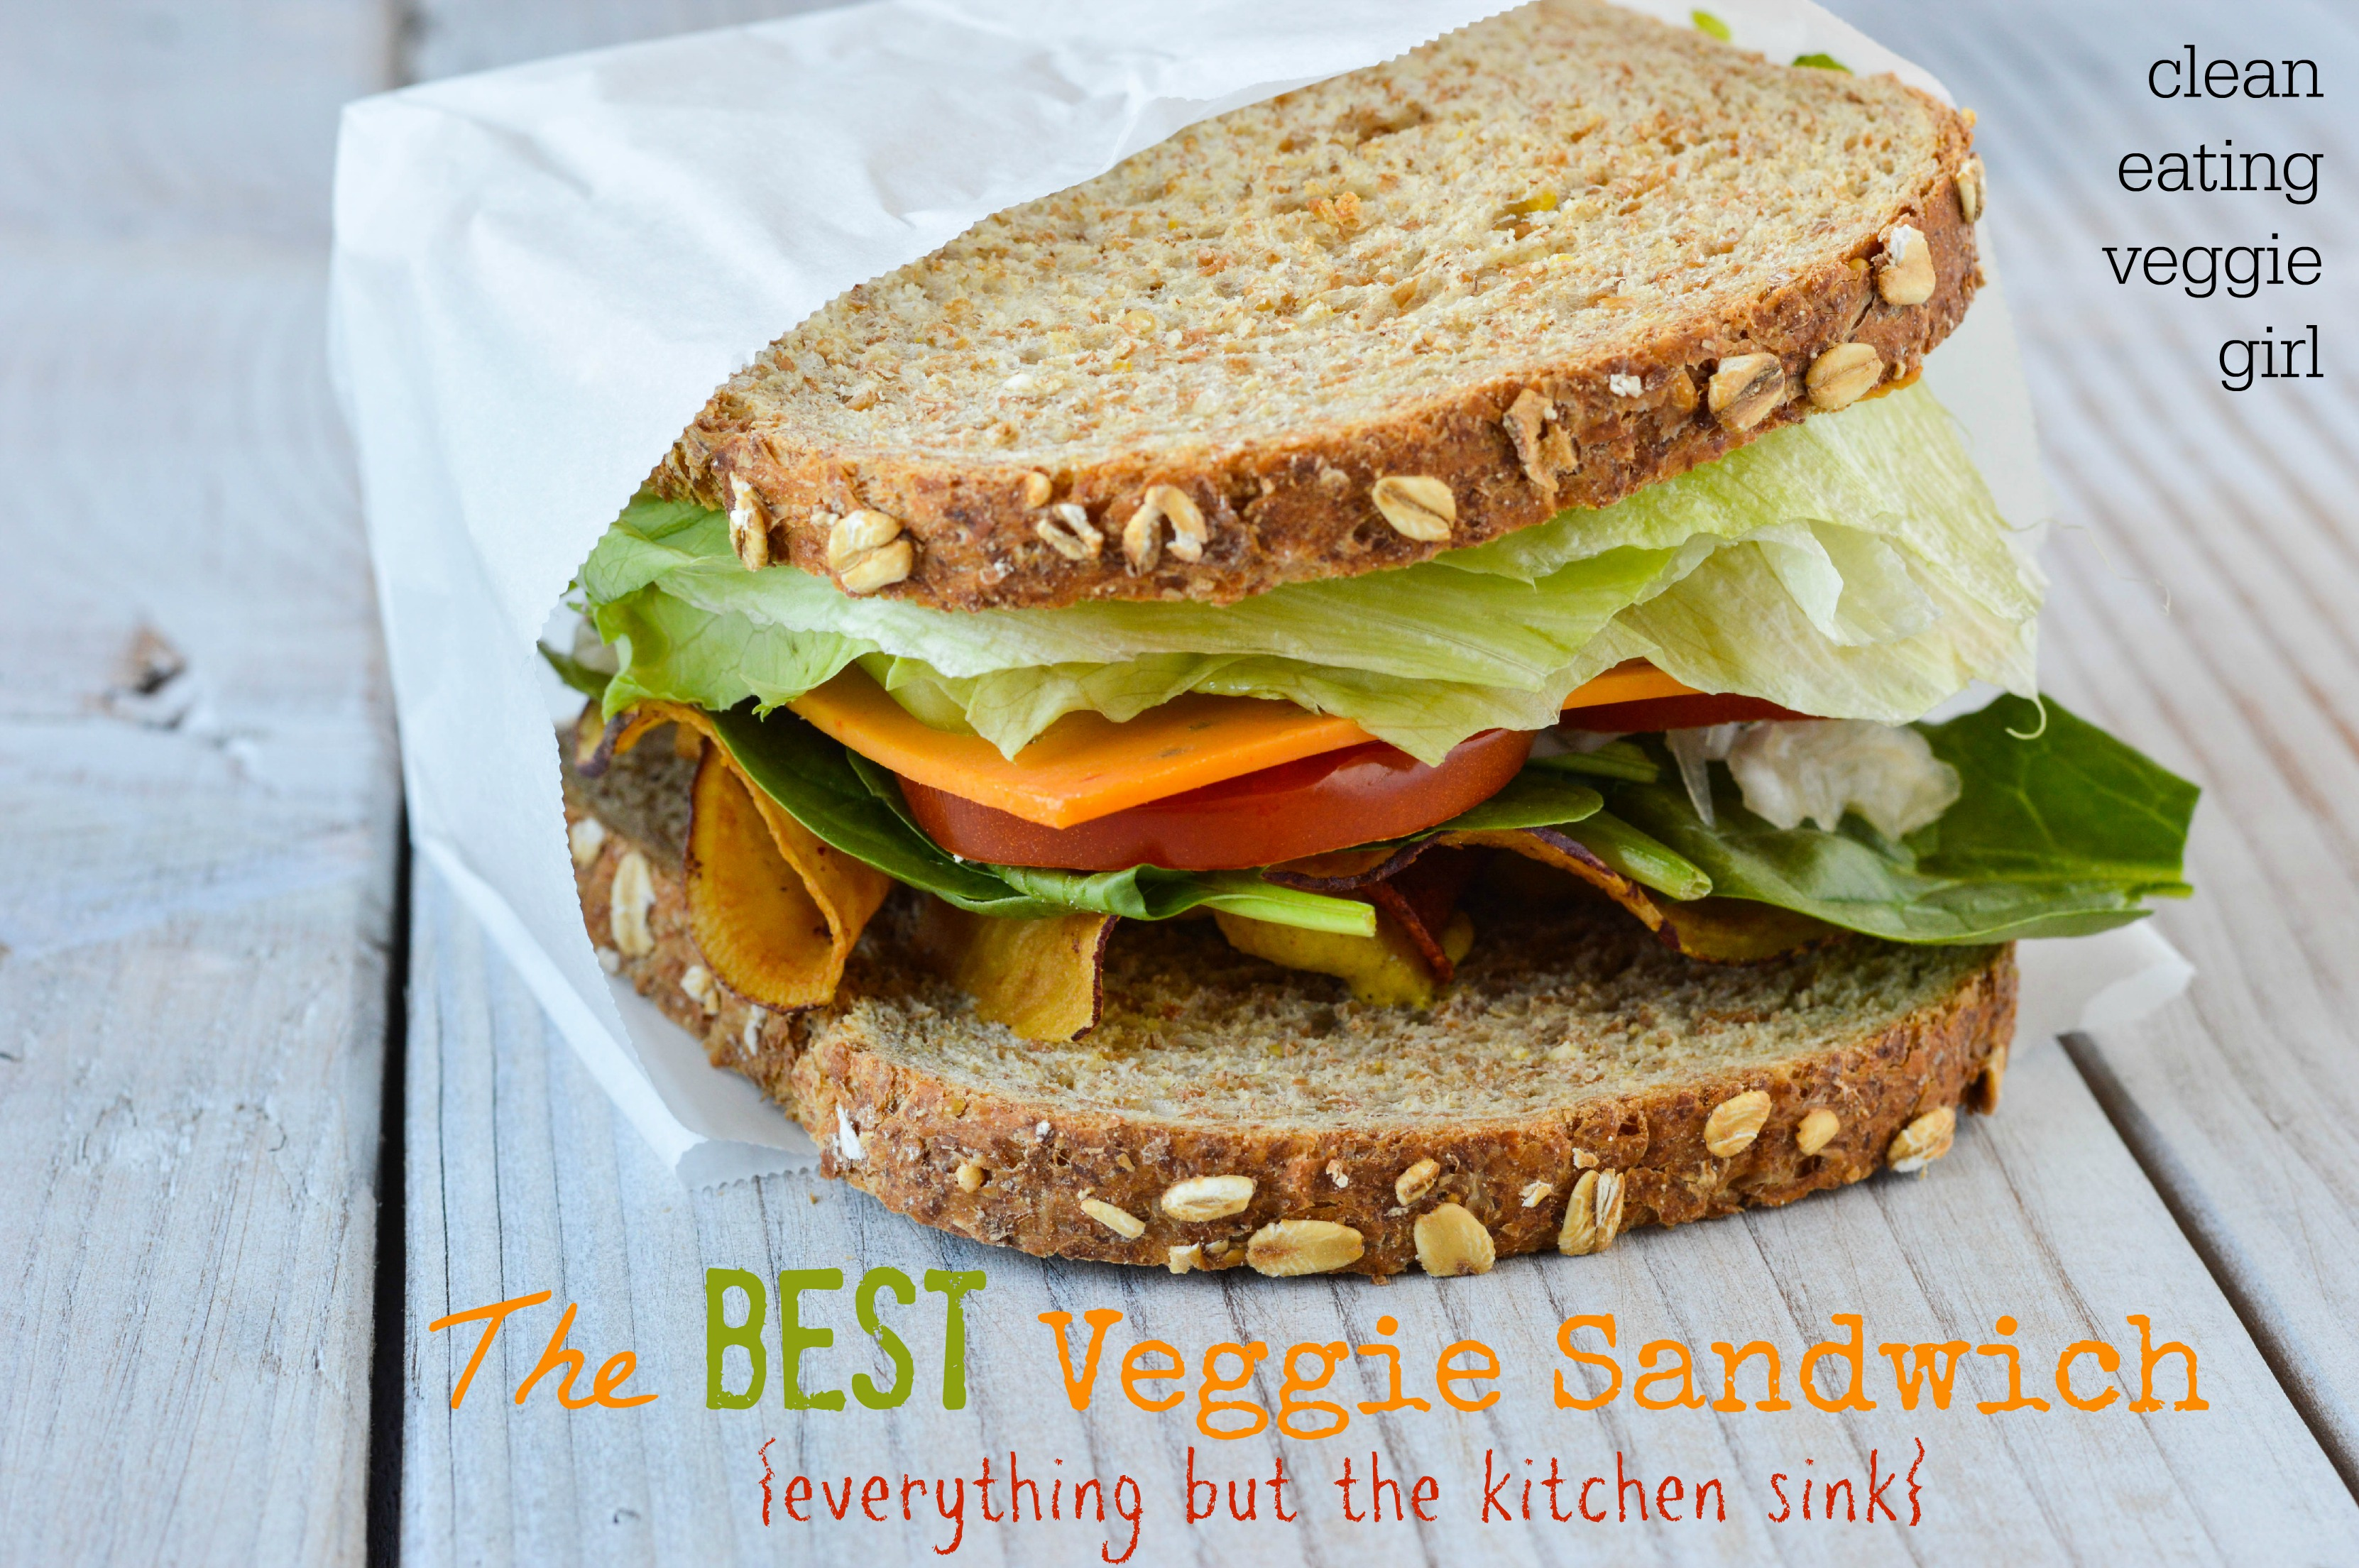 The Best Veggie Sandwich